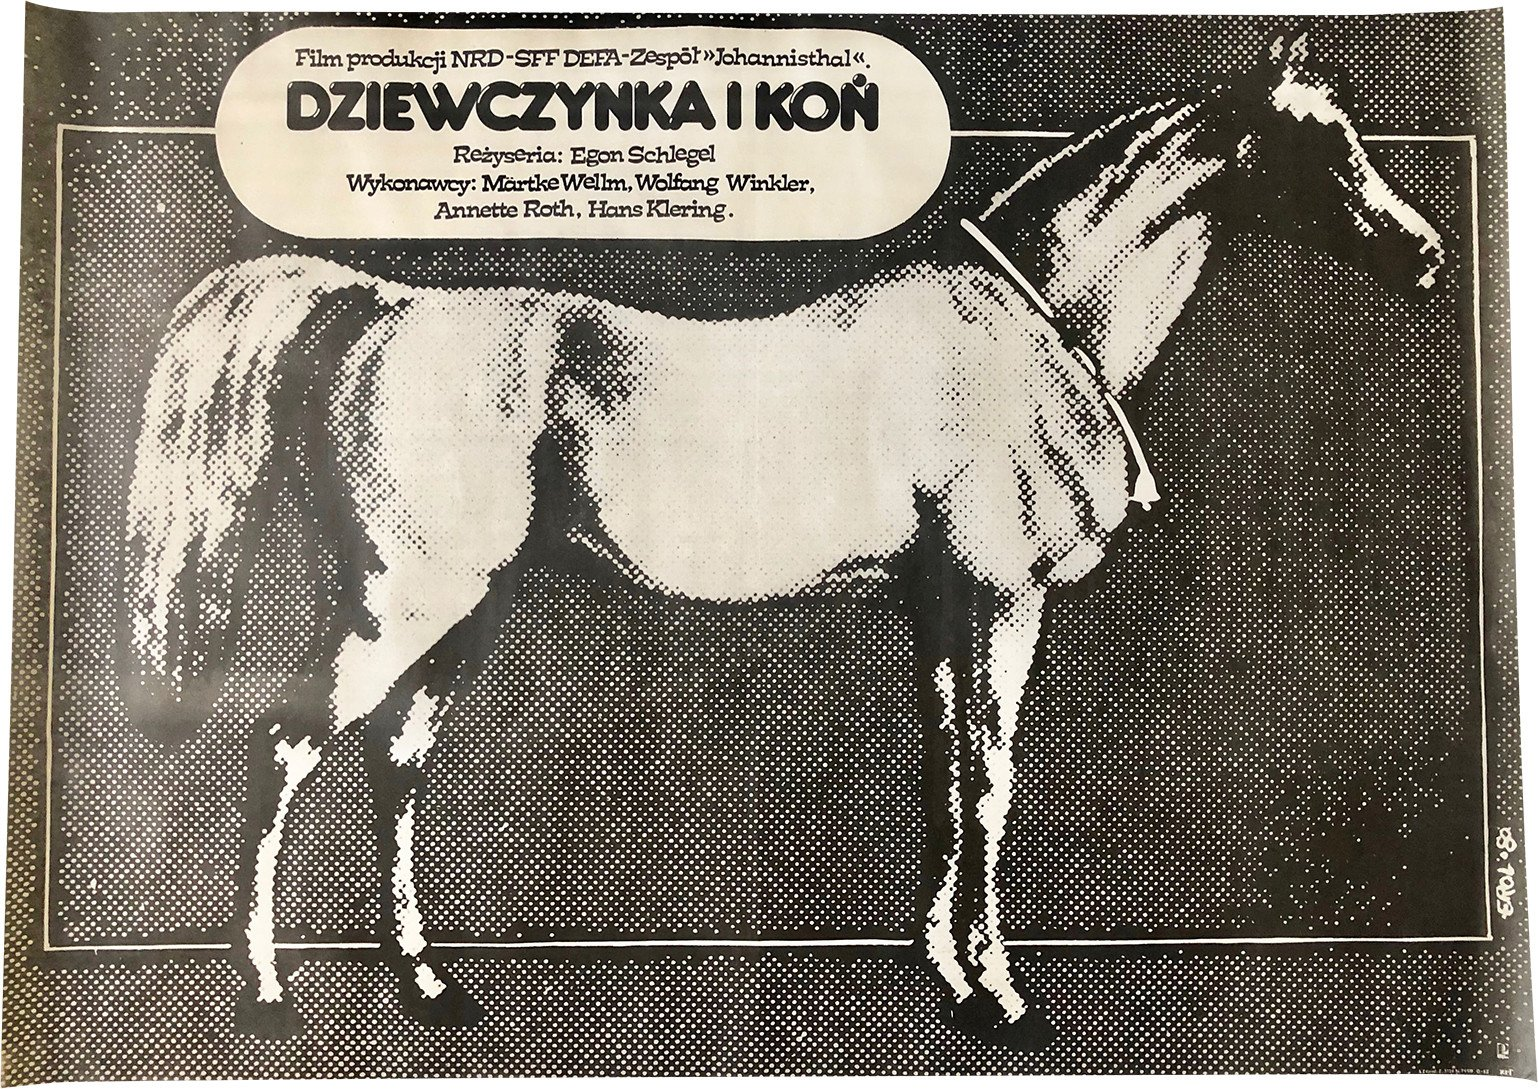 Poster by J. Erol, Poland, 1980s